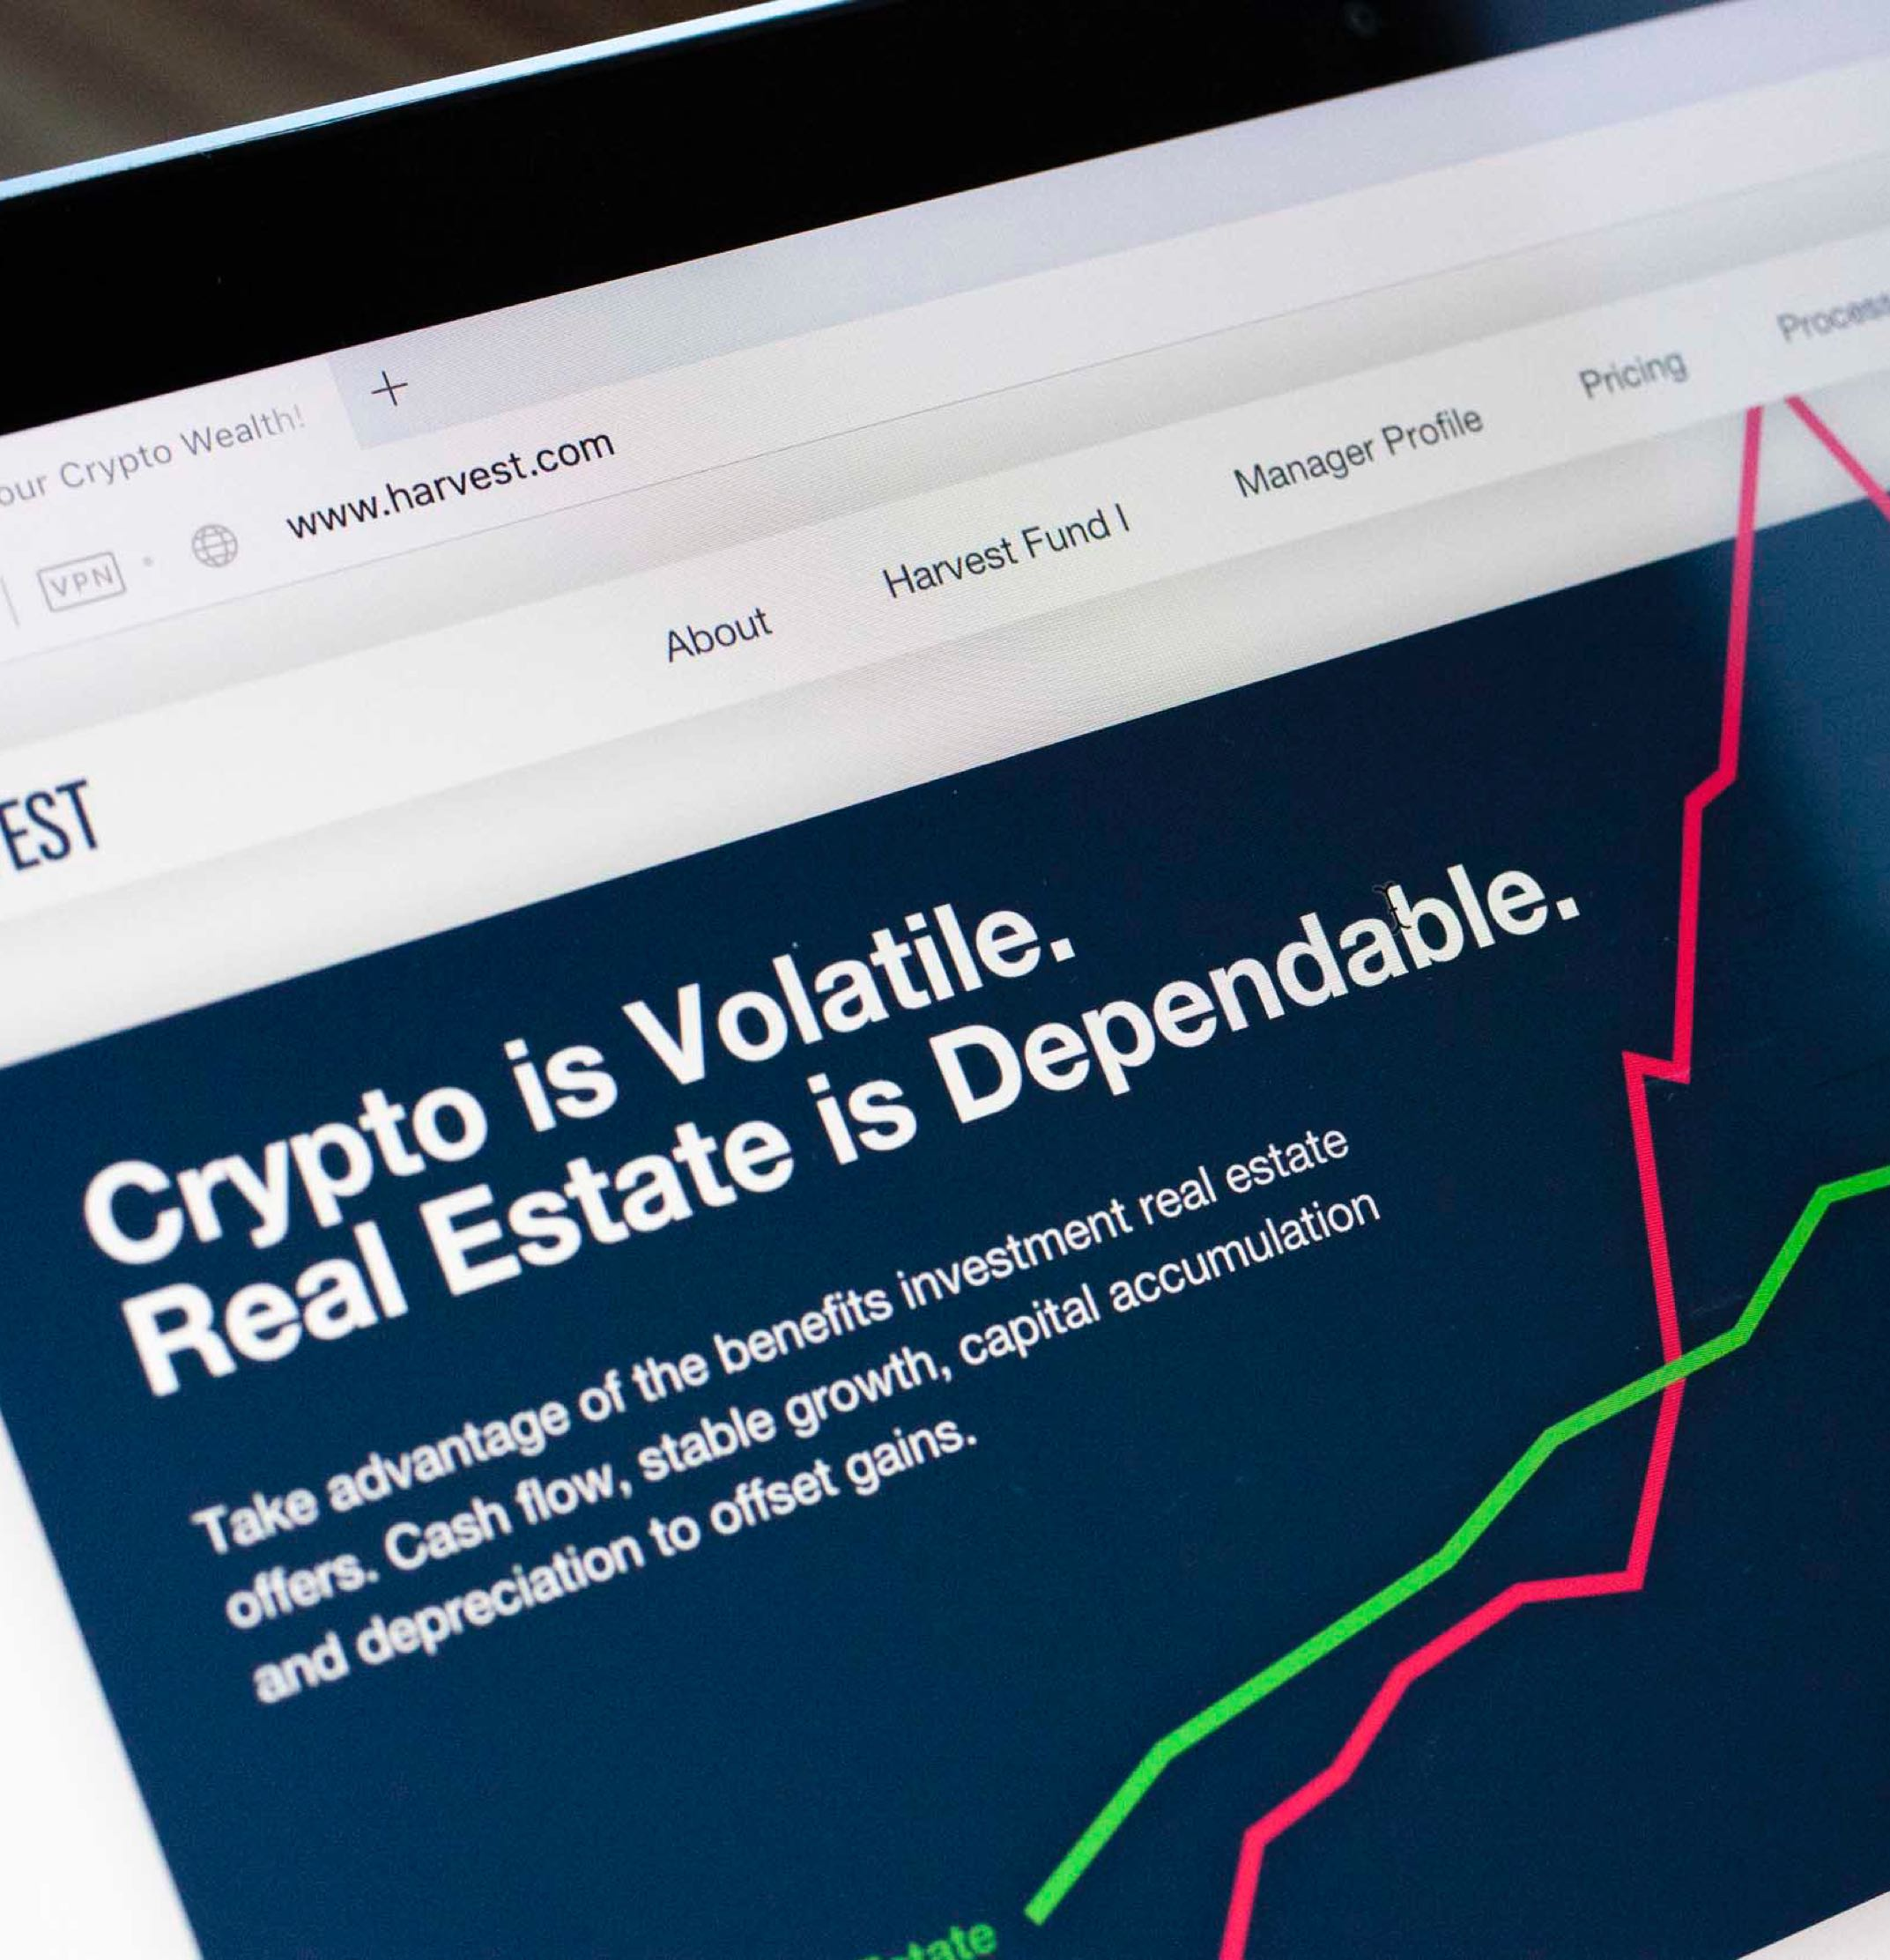 Harvest Real Estate Funs interactive neon pink and green graph of cryptocurrency vs real estate prices — by Dima Yagnyuk.